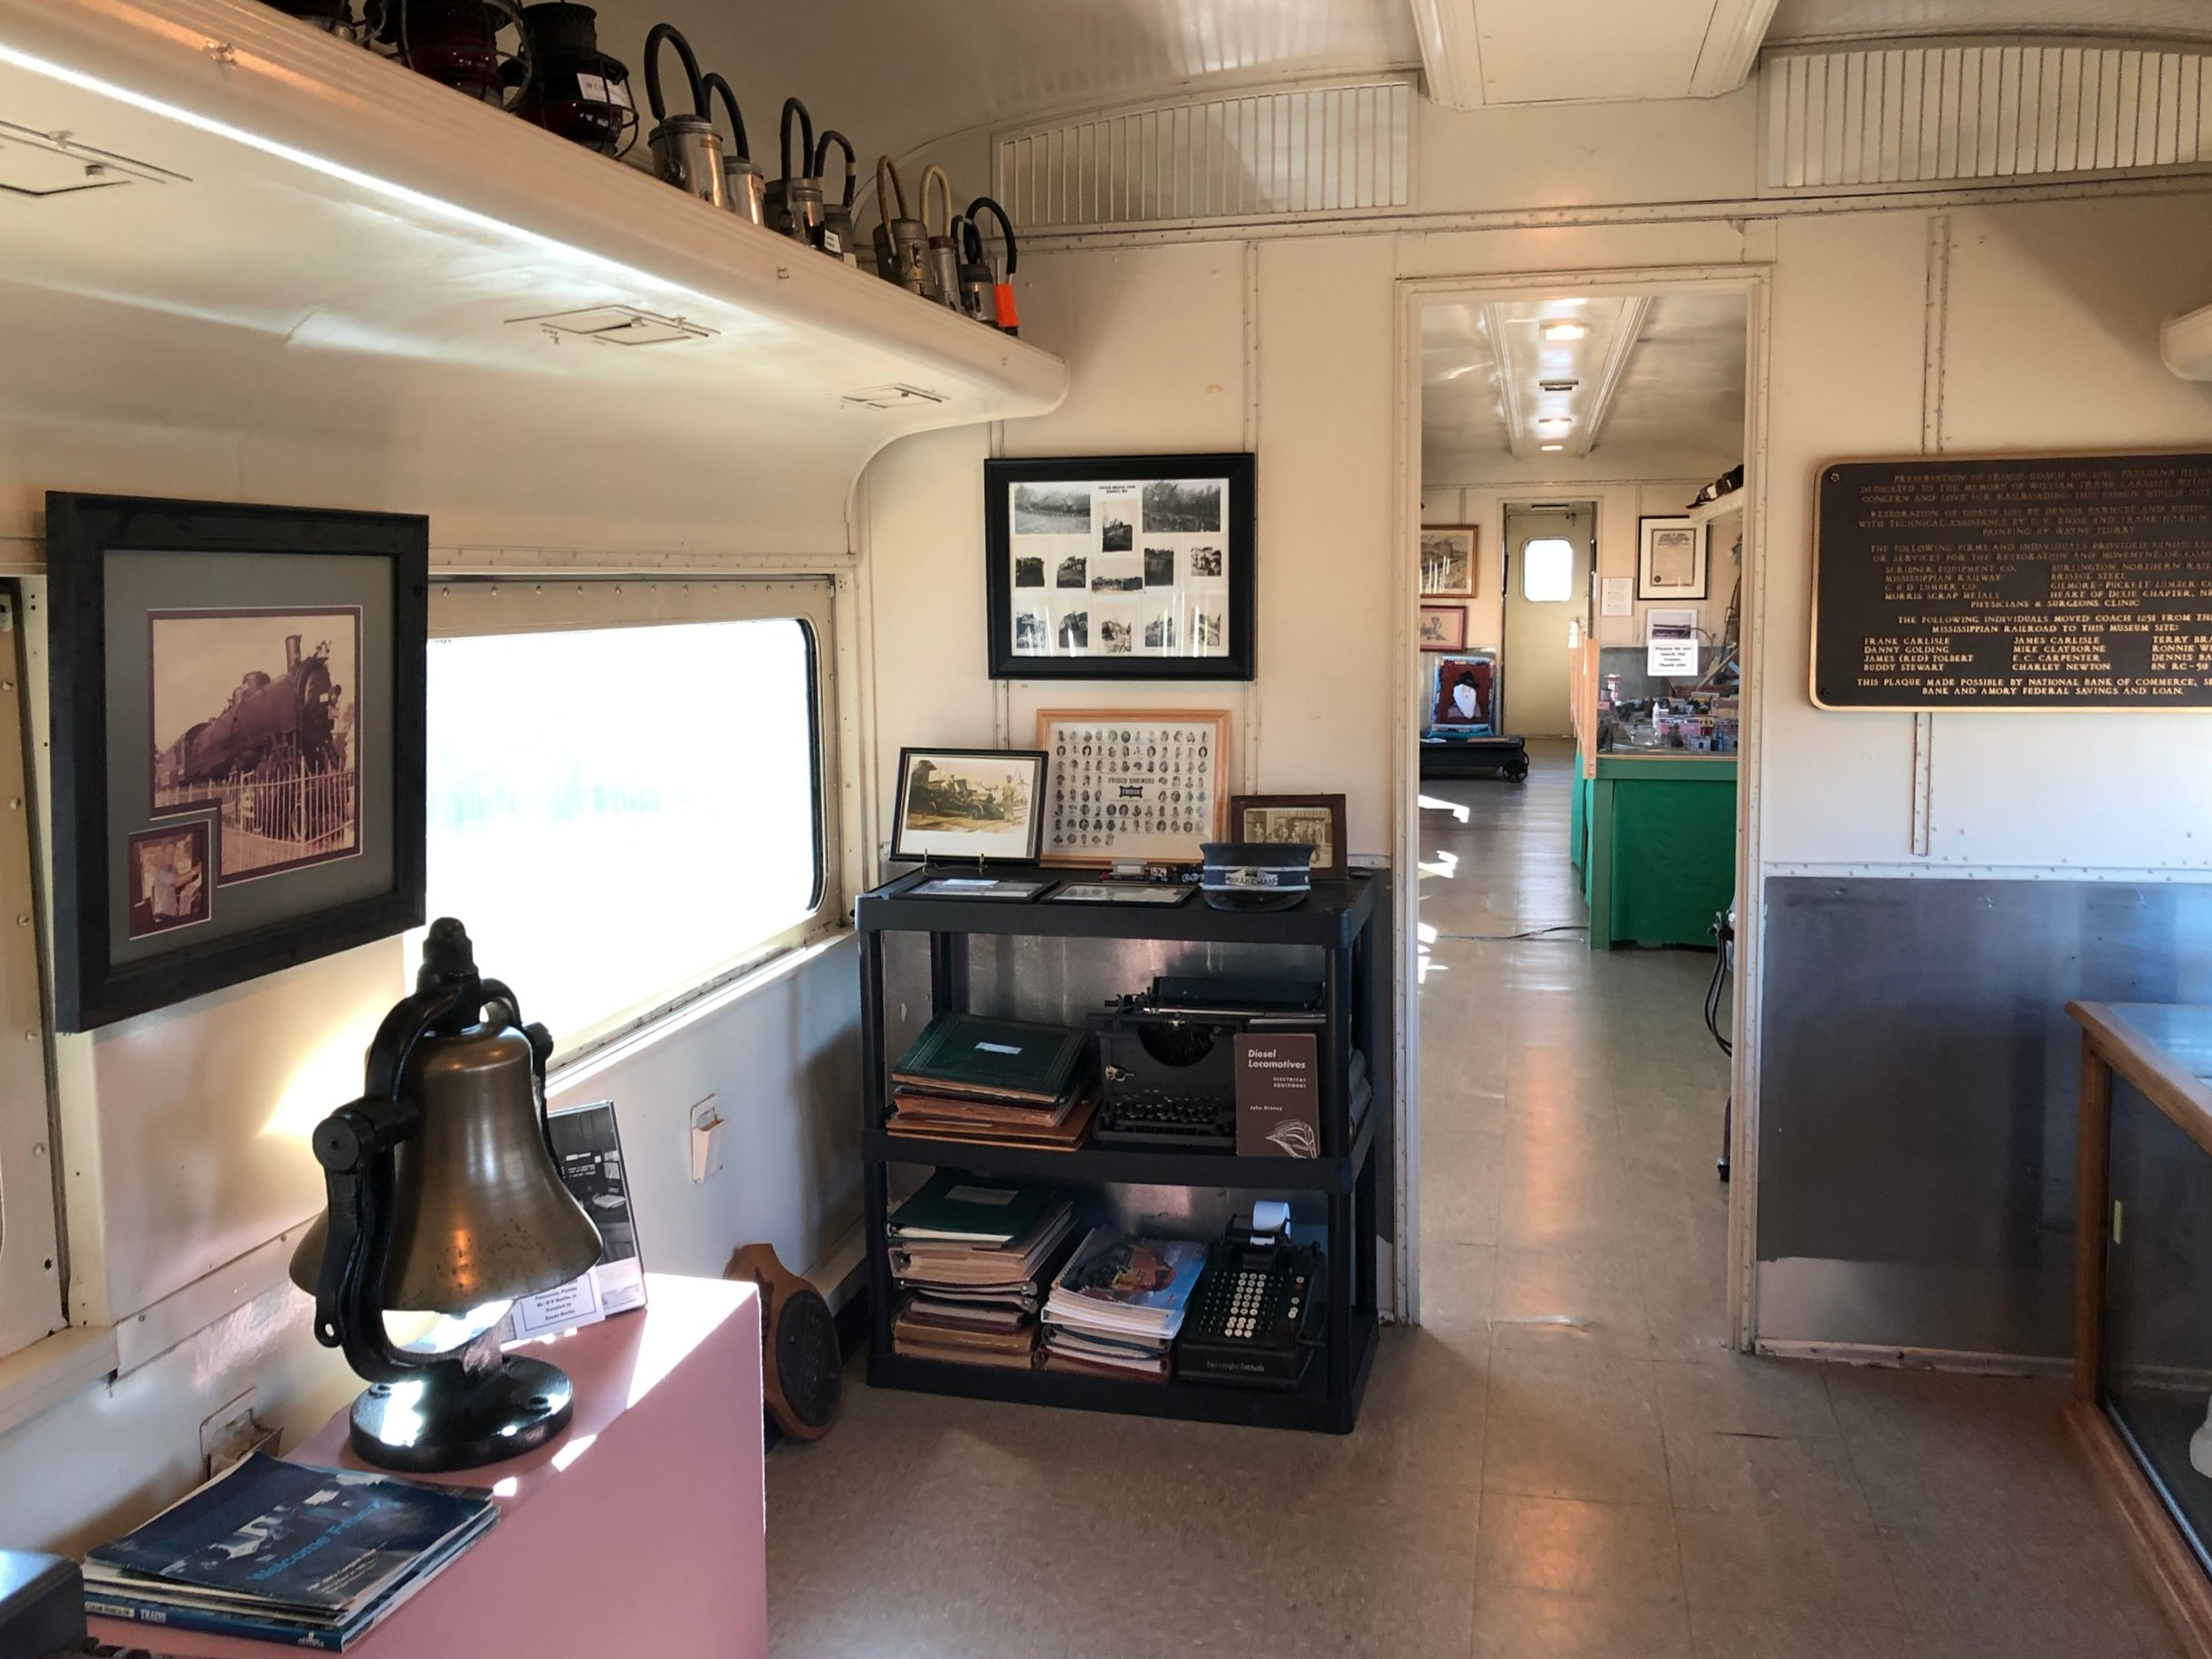 Exhibit room inside Frisco rail car